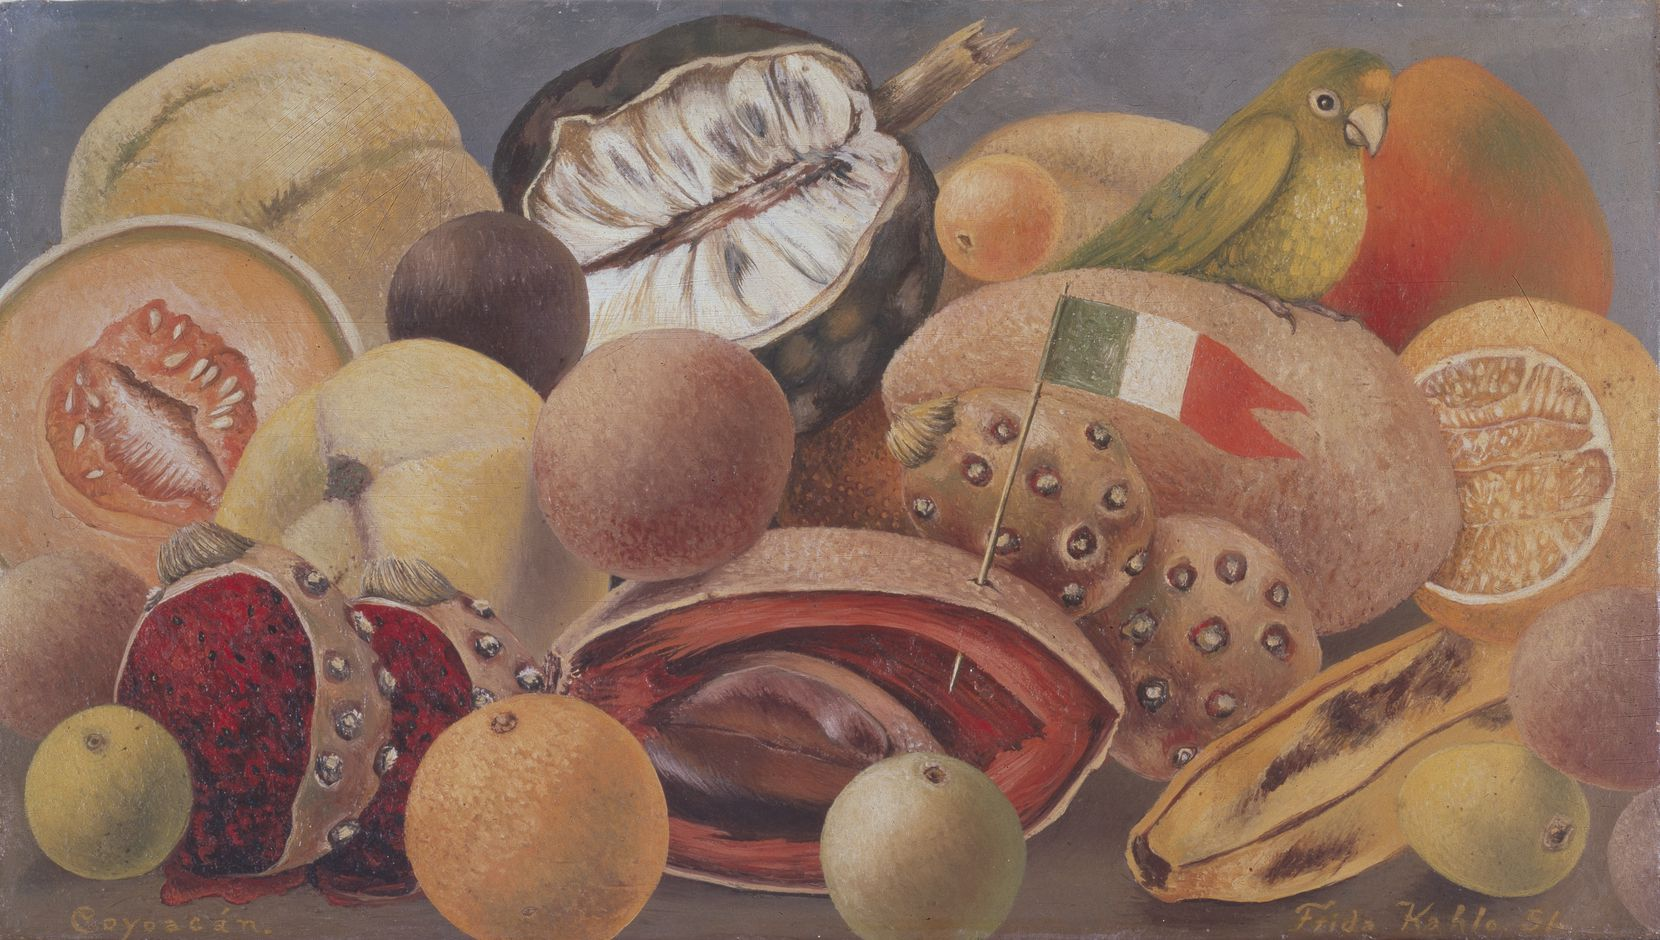 Frida Kahlo, Naturaleza muerta con loro y bandera, 1951, óleo sobre masonita, colección privada, cortesía de Galer a Arvil.  2021 Banco de México Diego Rivera Frida Kahlo Museums Trust, México, DF / Artists Rights Society (ARS), Nueva York